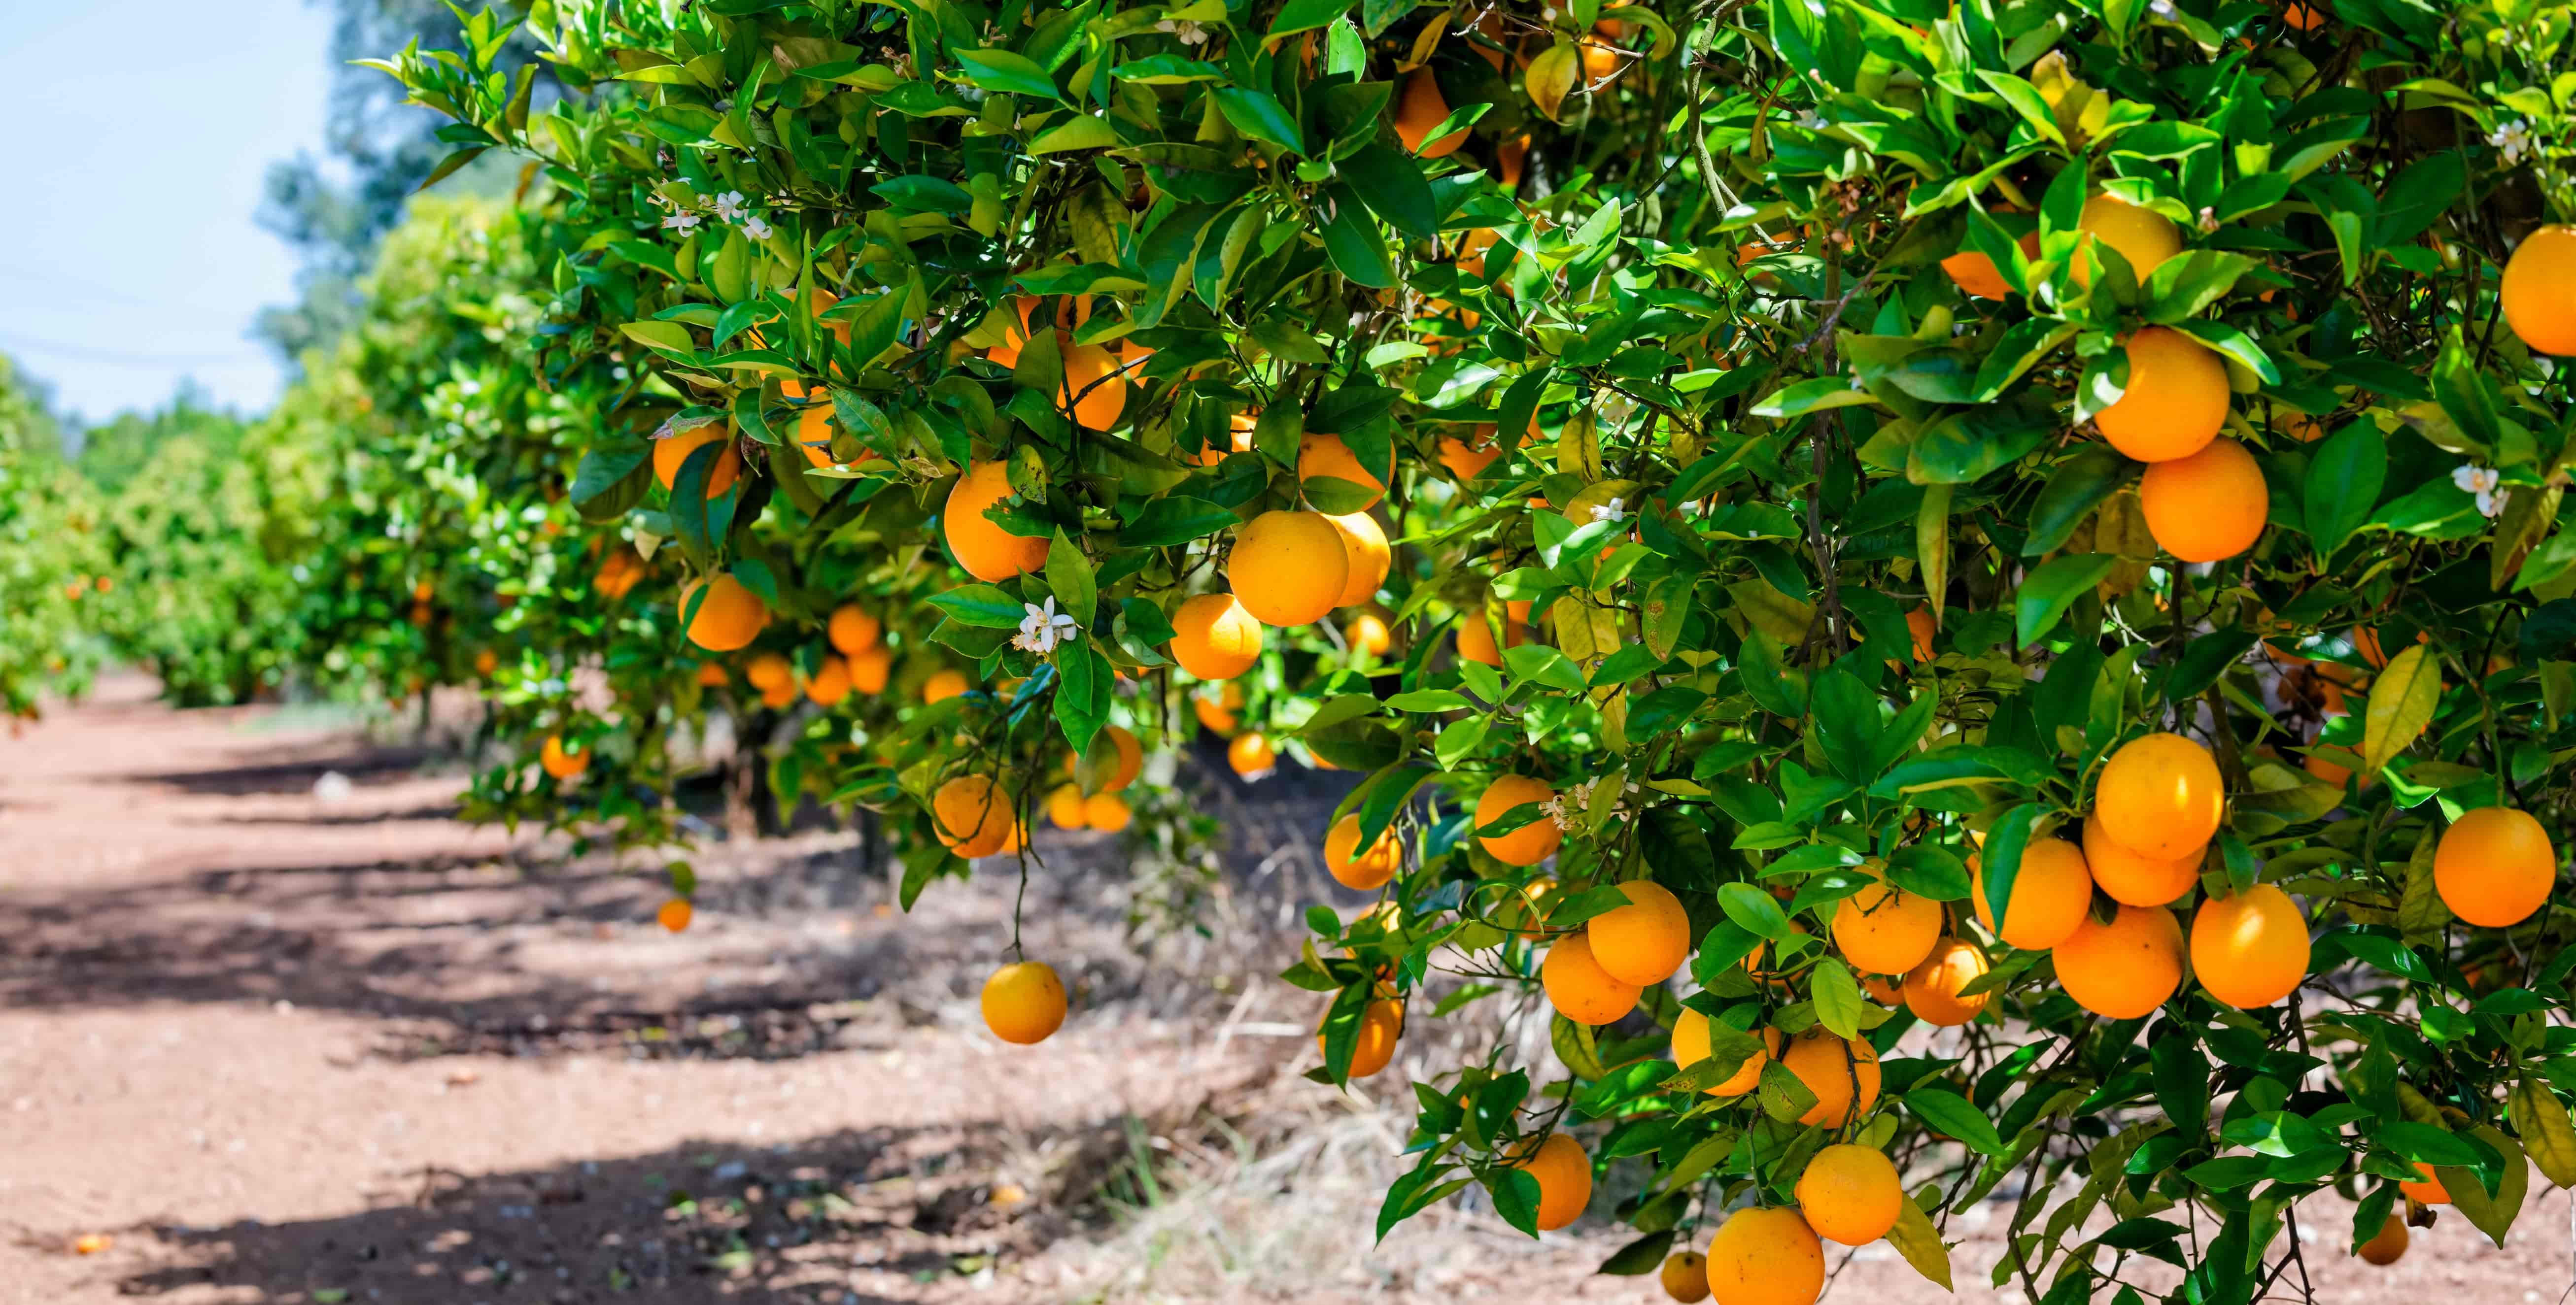 What should be the climate for the cultivation of citrus fruits?